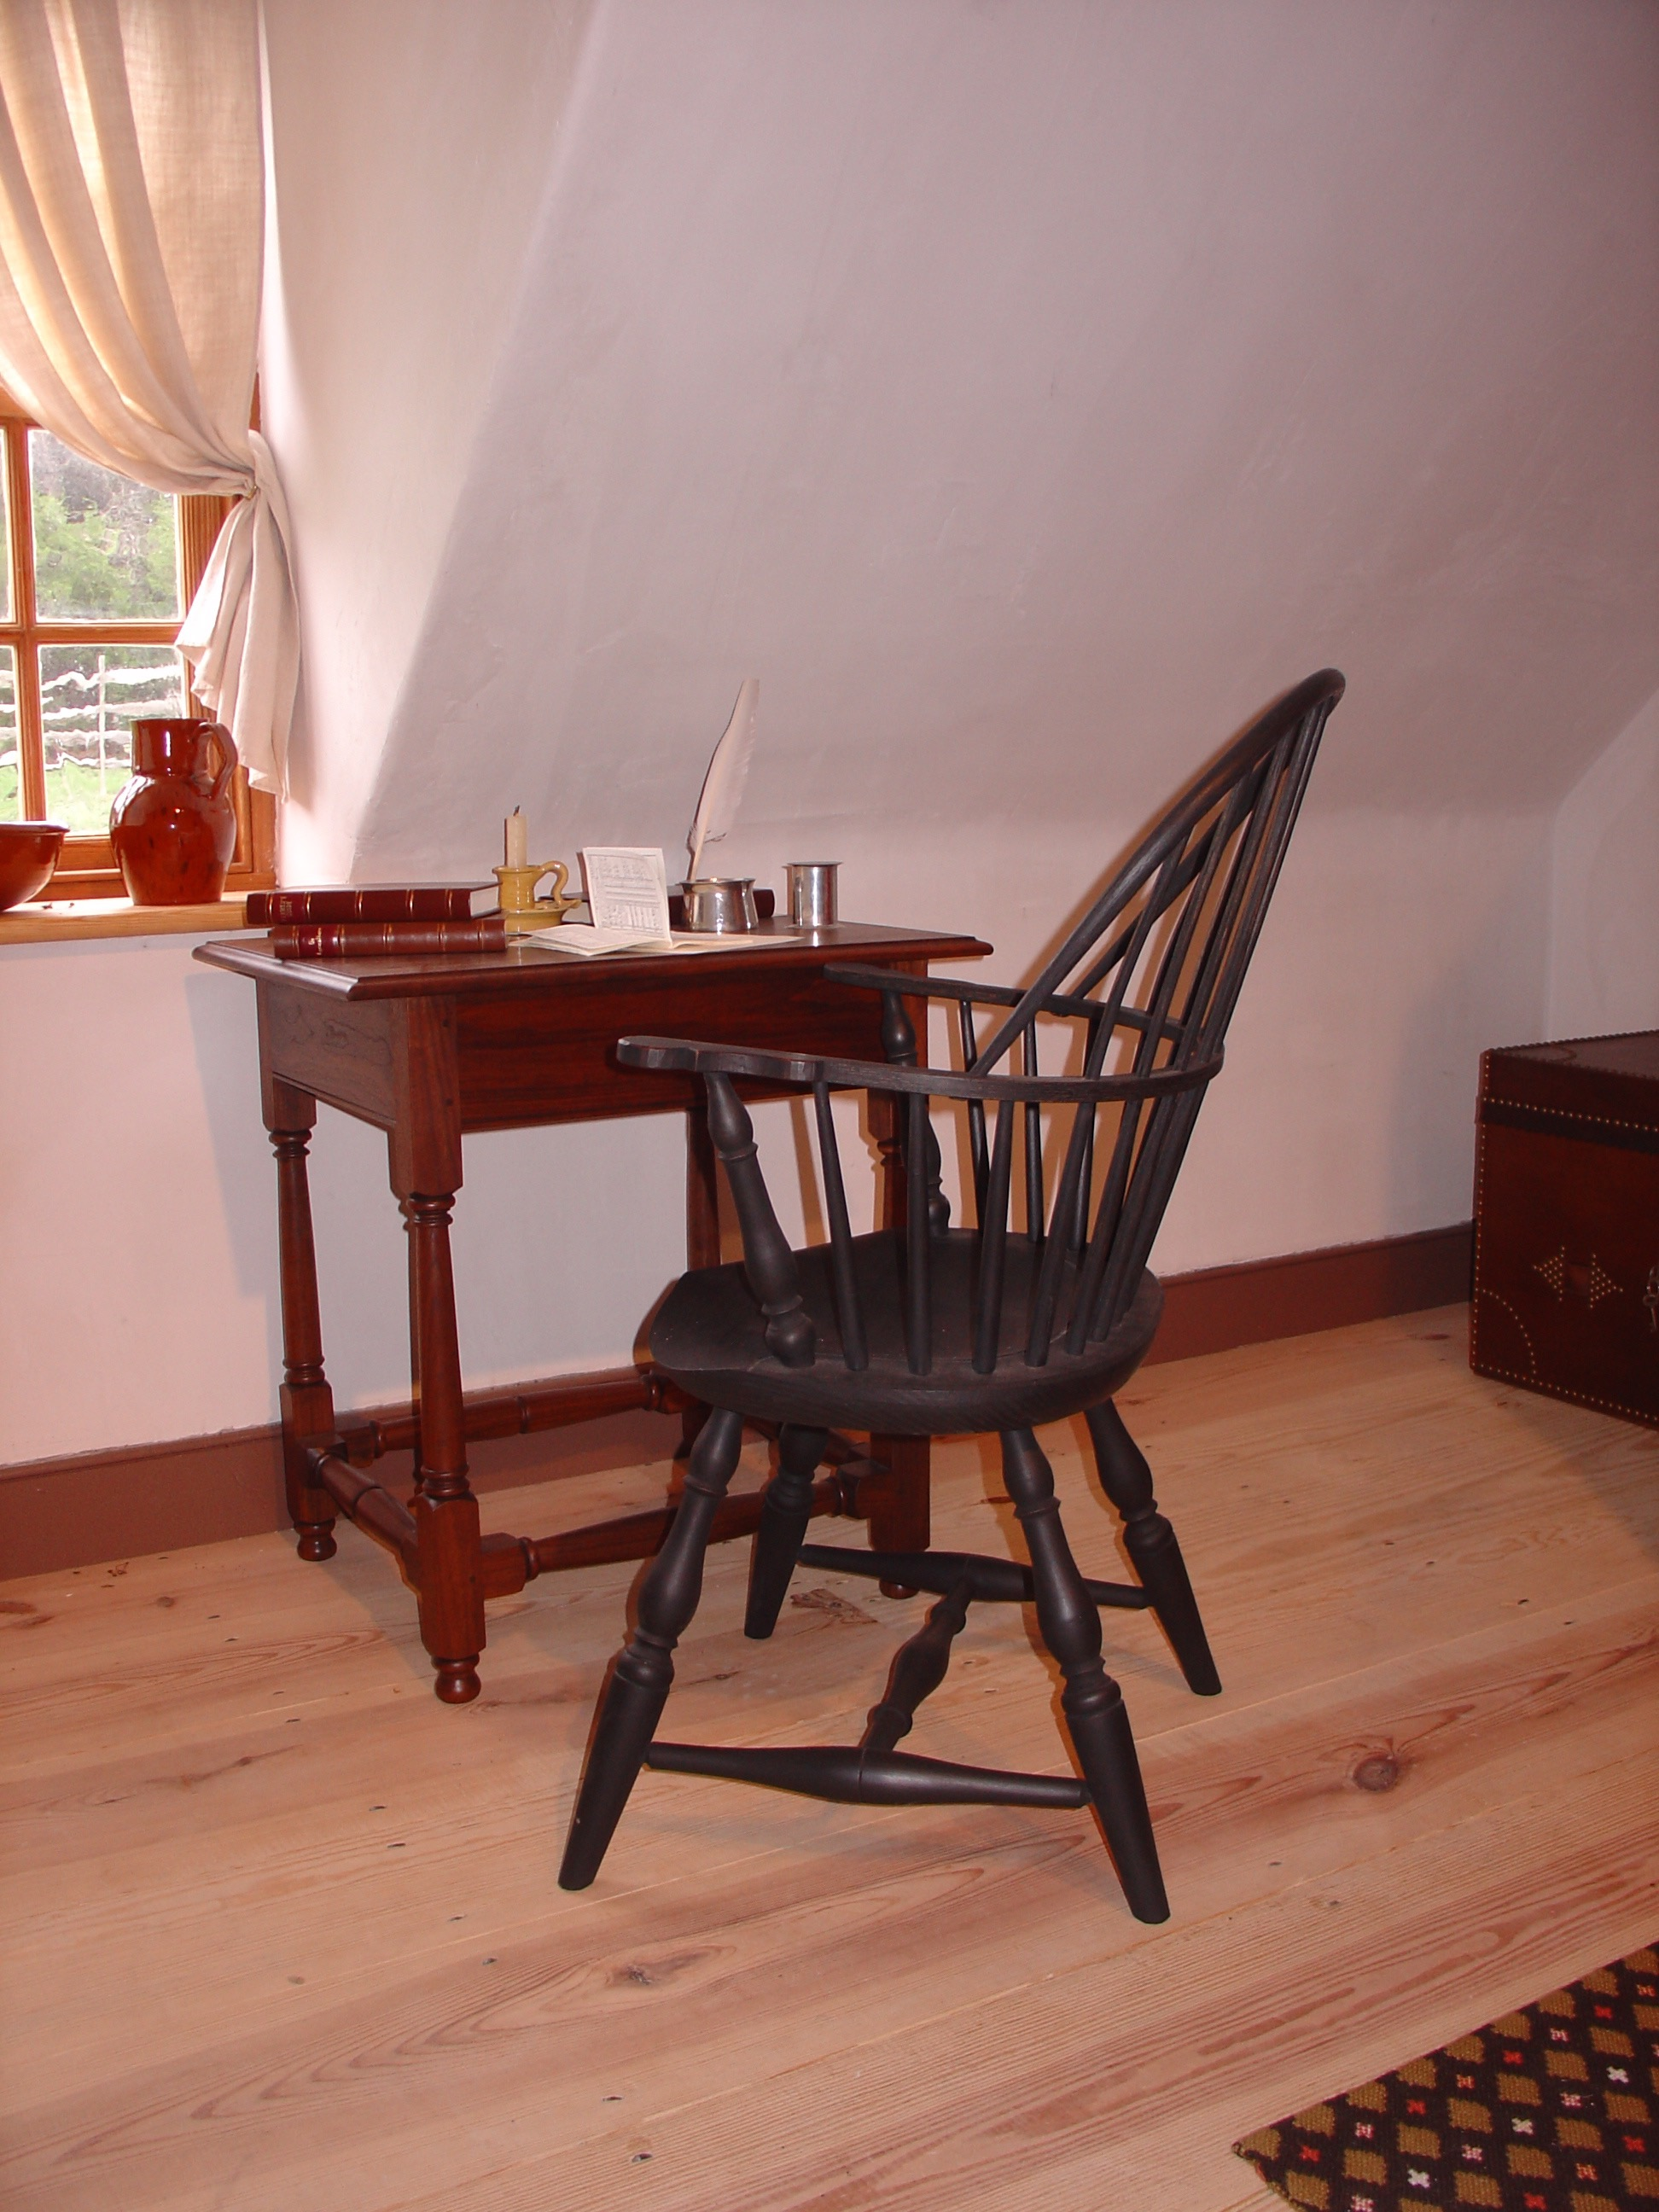 This is a 9 spindle Sack Back Windsor chair I built for the Distillery at Mount Vernon